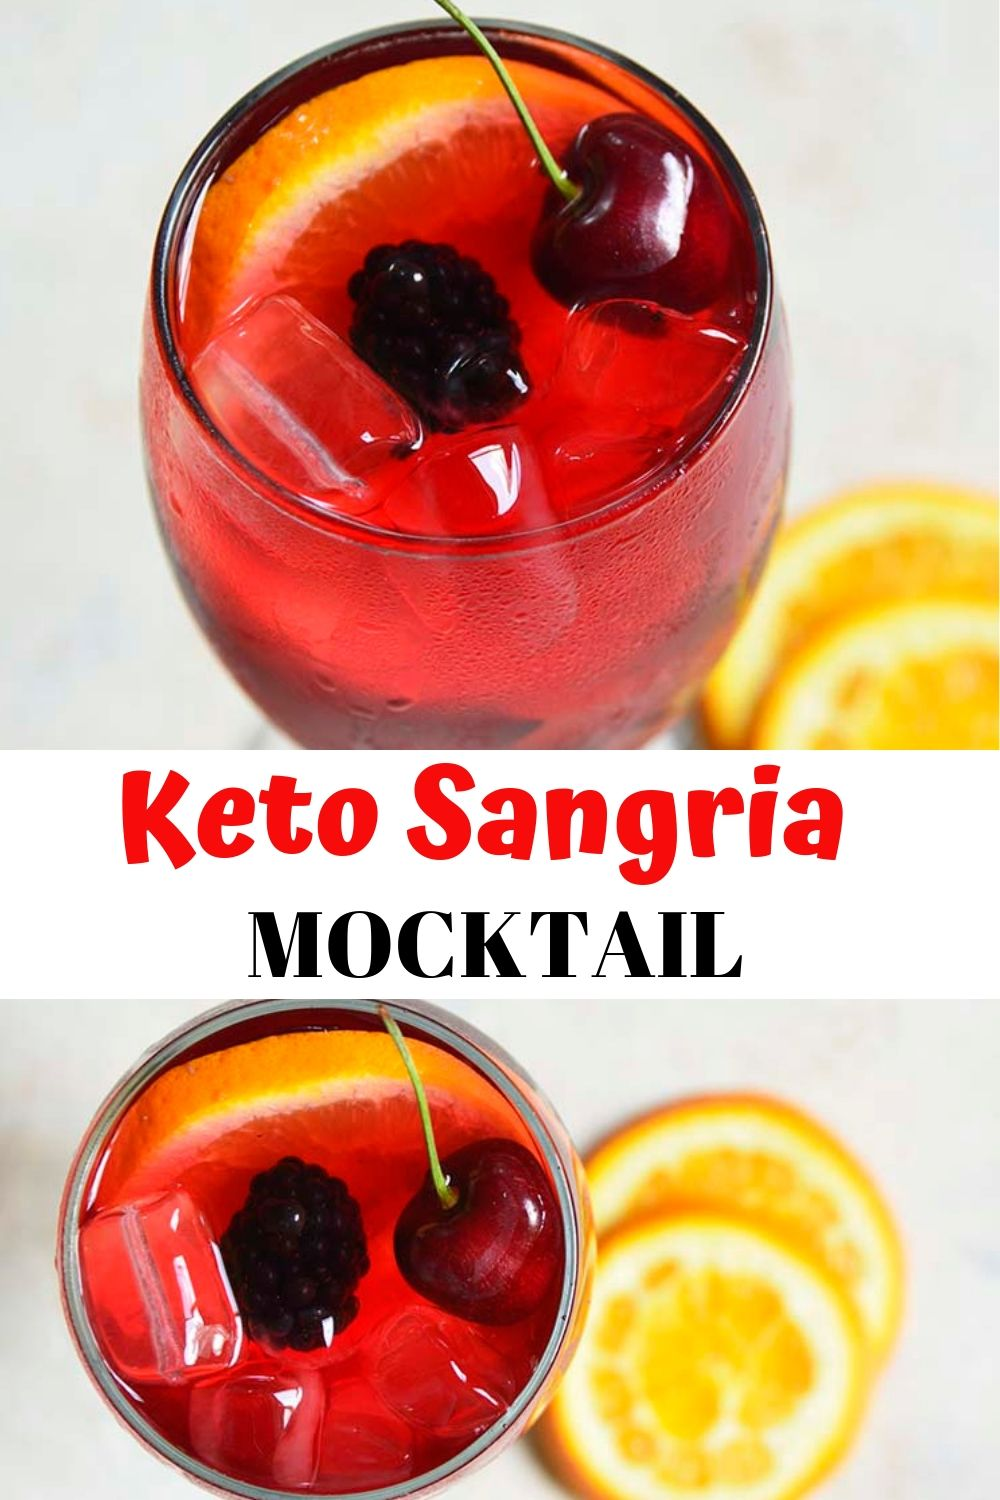 Keto Sangria Mocktail Recipe. This simple faux red sangria recipe is slightly sweet and refreshing. It's the perfect fruity Summery drink!